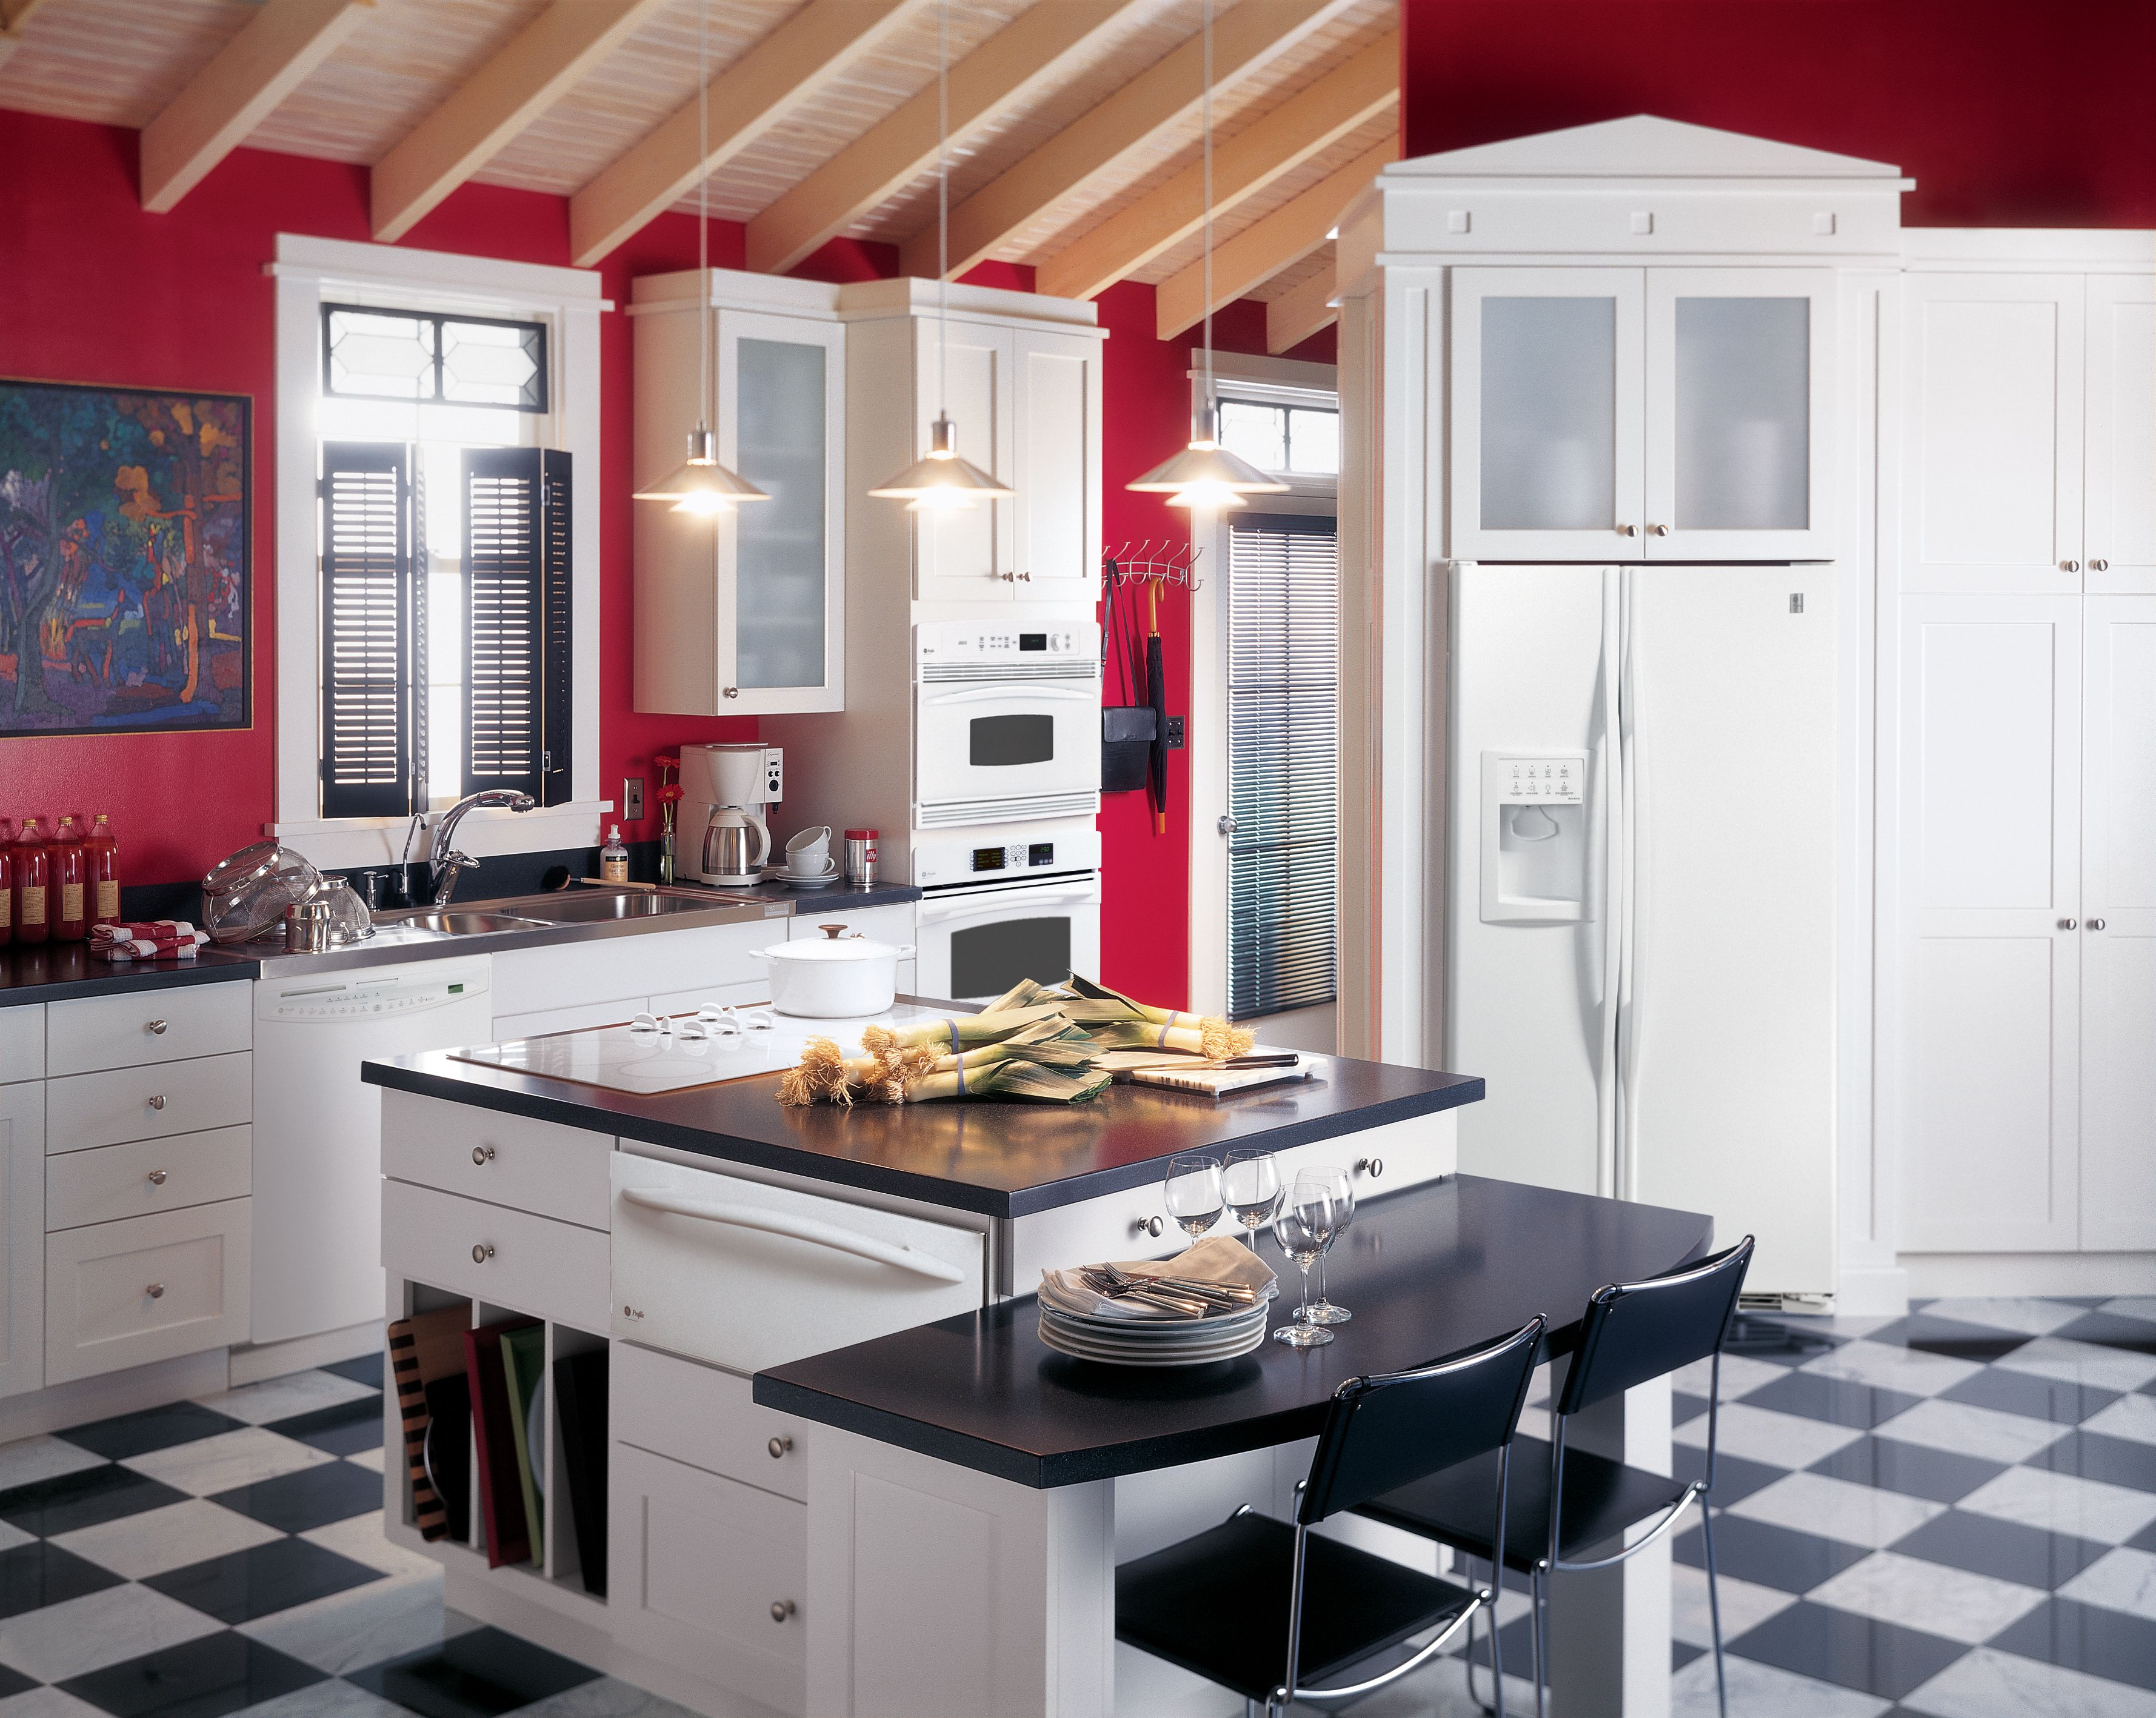 Black Kitchen Cabinets What Color On Wall Ge Profile Kitchen With Red Walls White Cabinets And